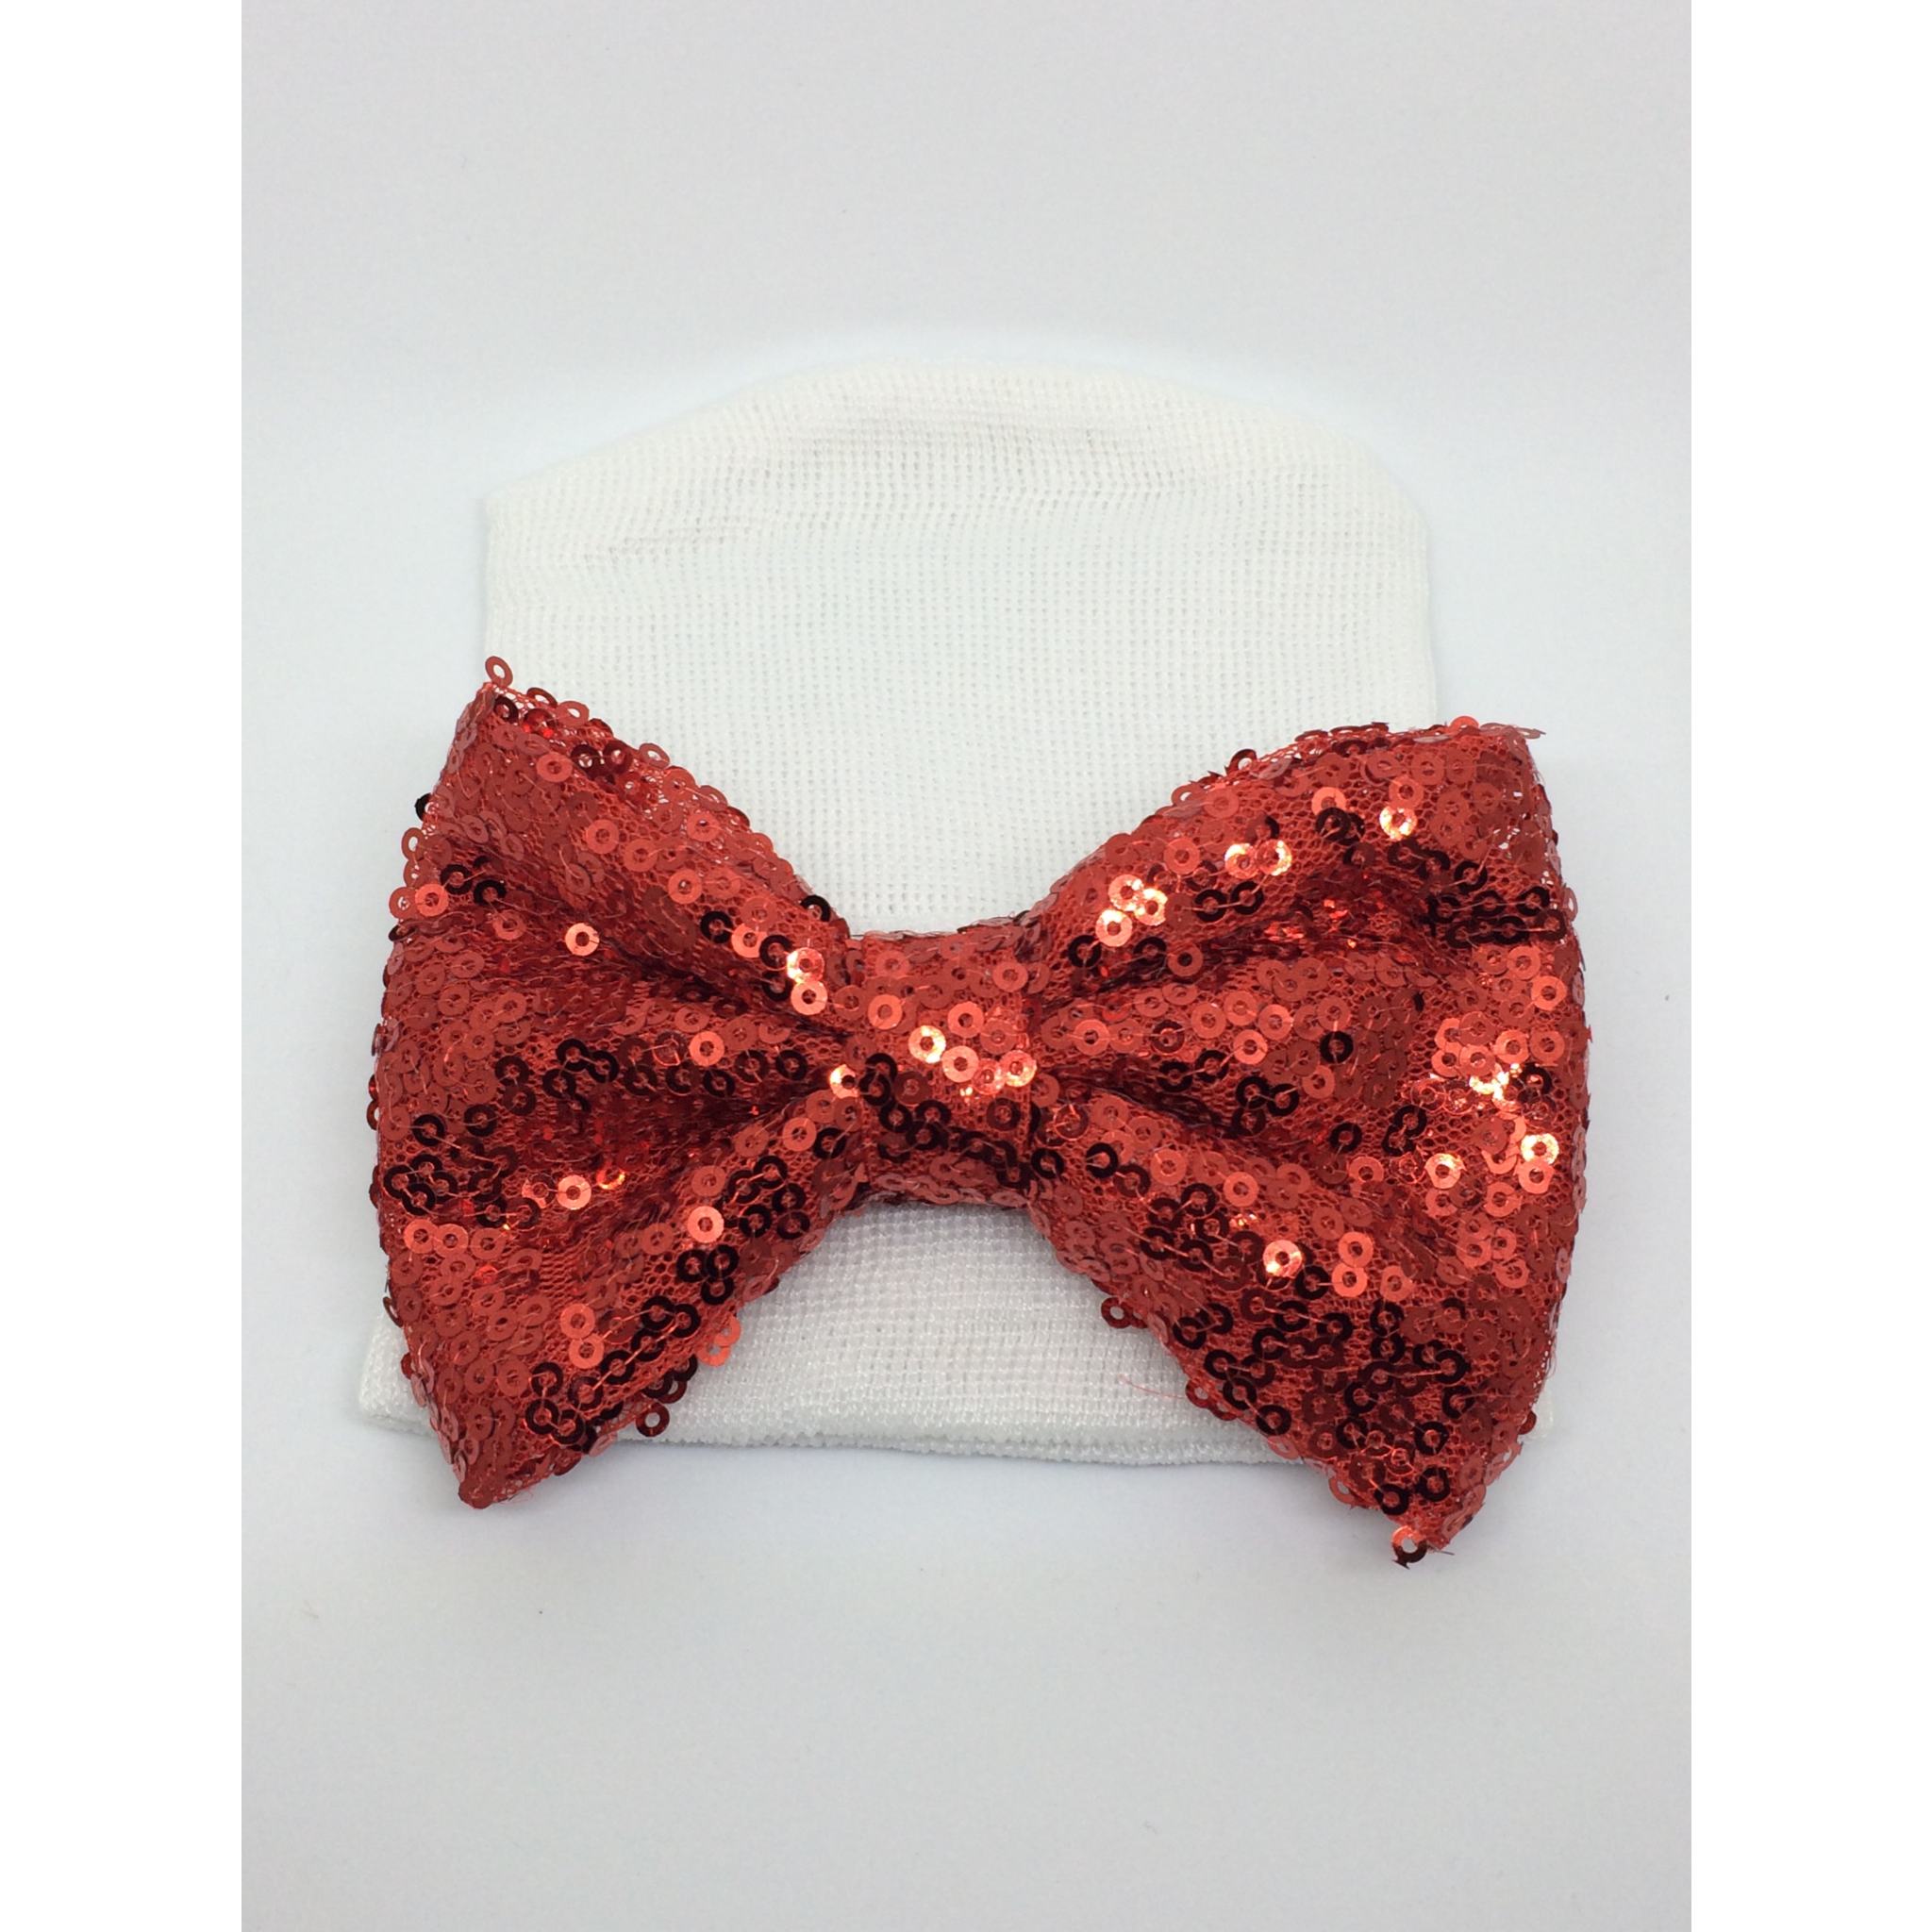 White hat -red bow – BabyGdesigns13